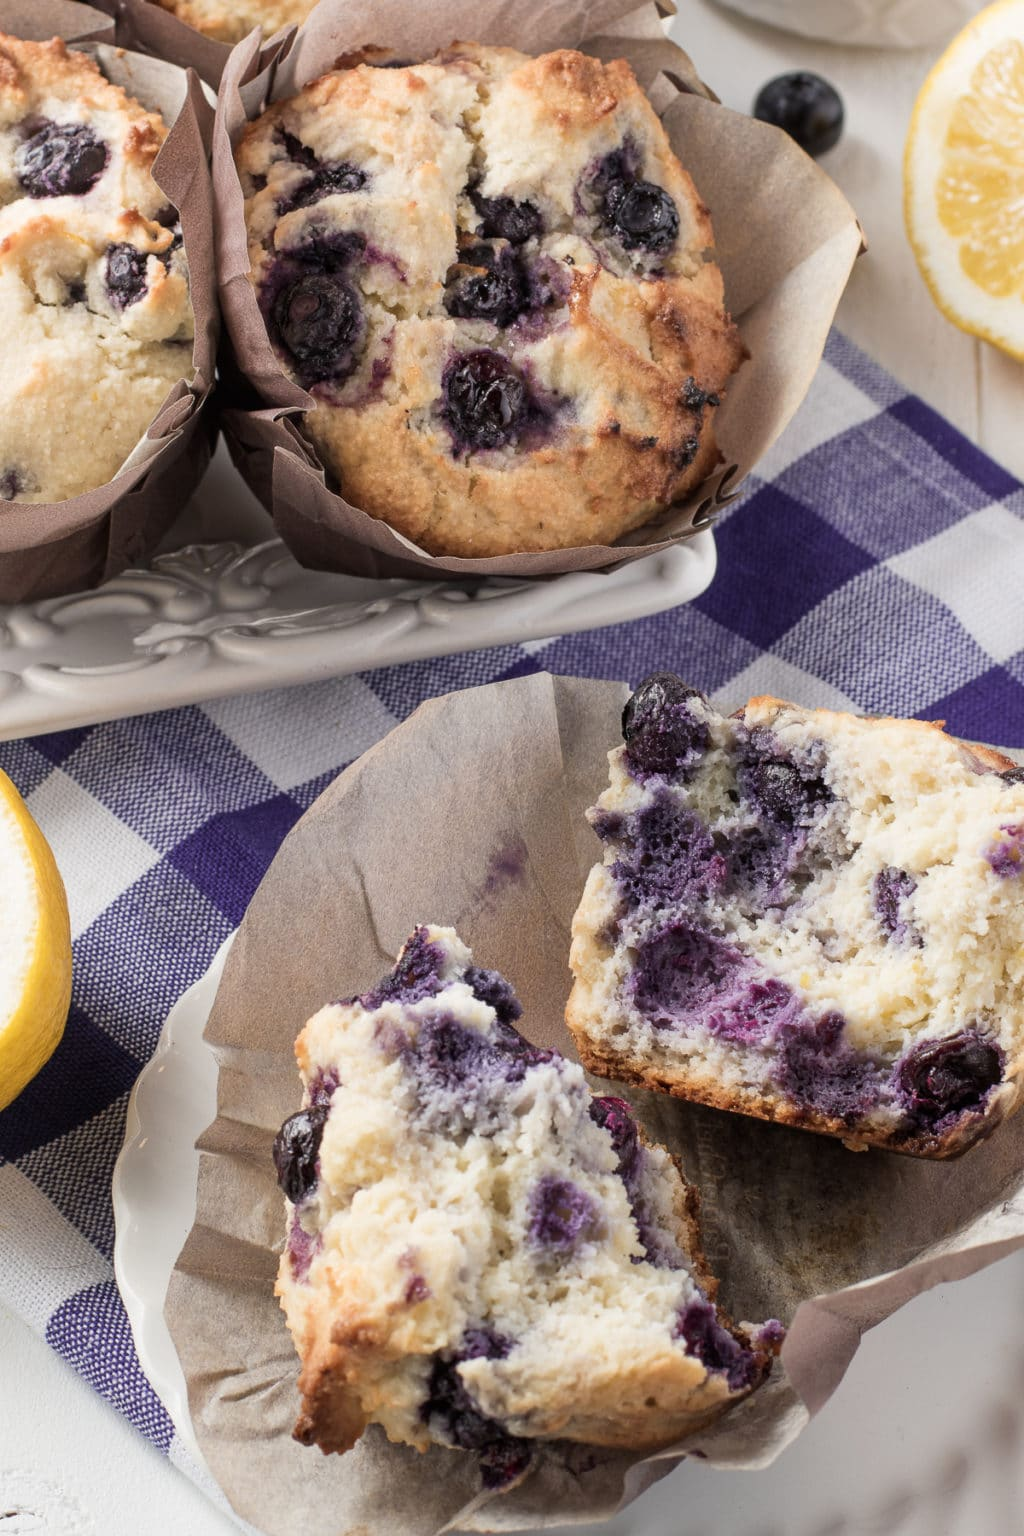 A fresh gluten-free blueberry muffin split down the centre resting in a muffin liner. Surrounded by fresh blueberry muffins and lemons all on a bright blue gingham napkin